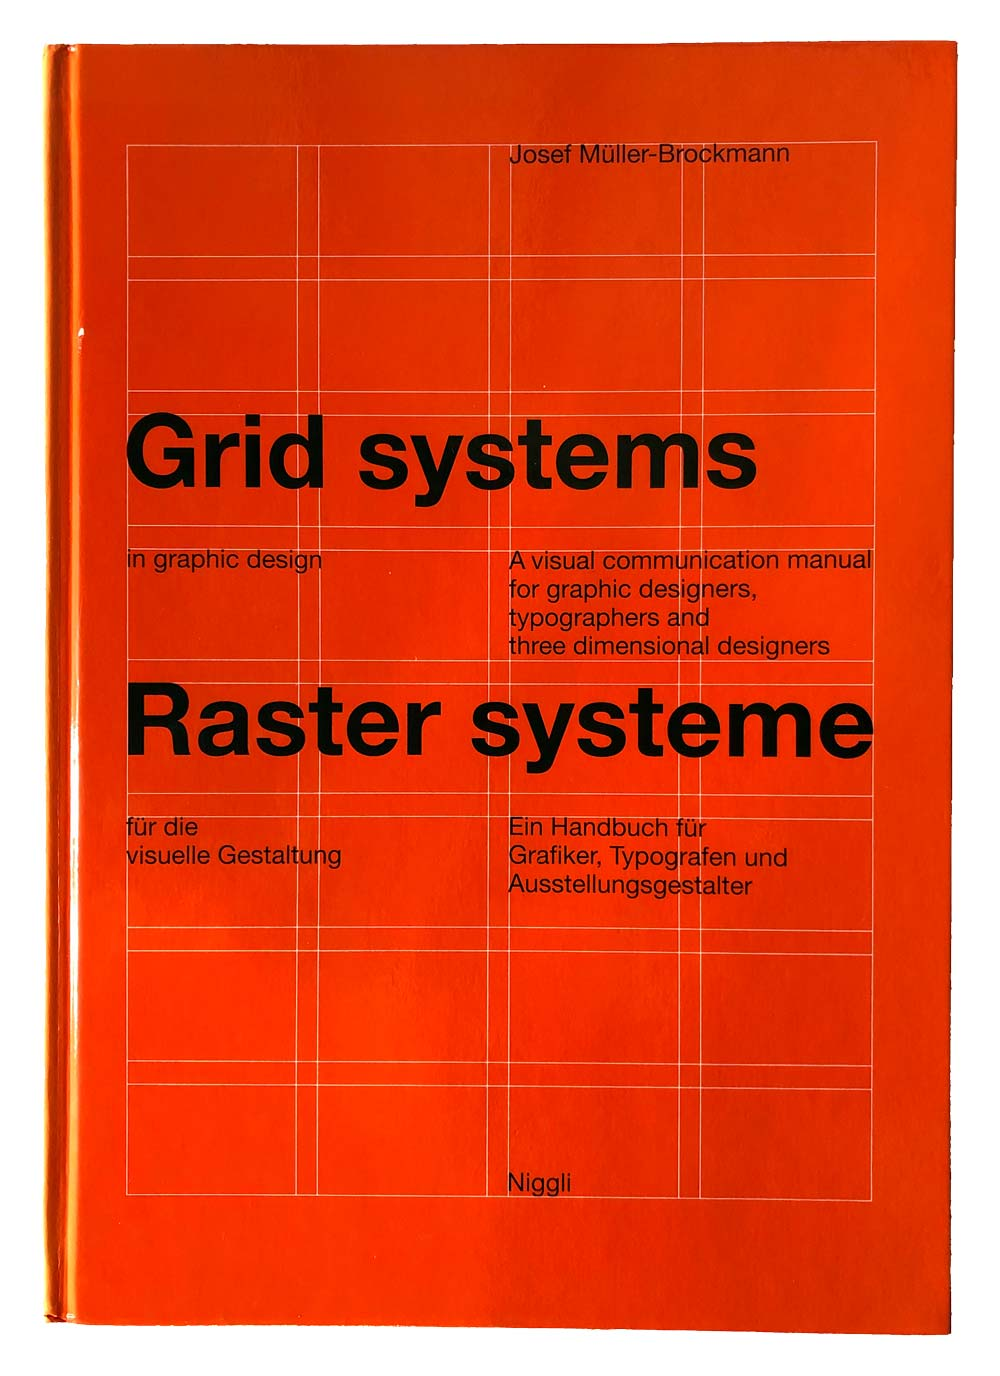 Orange book cover of Grid systems in graphic design.